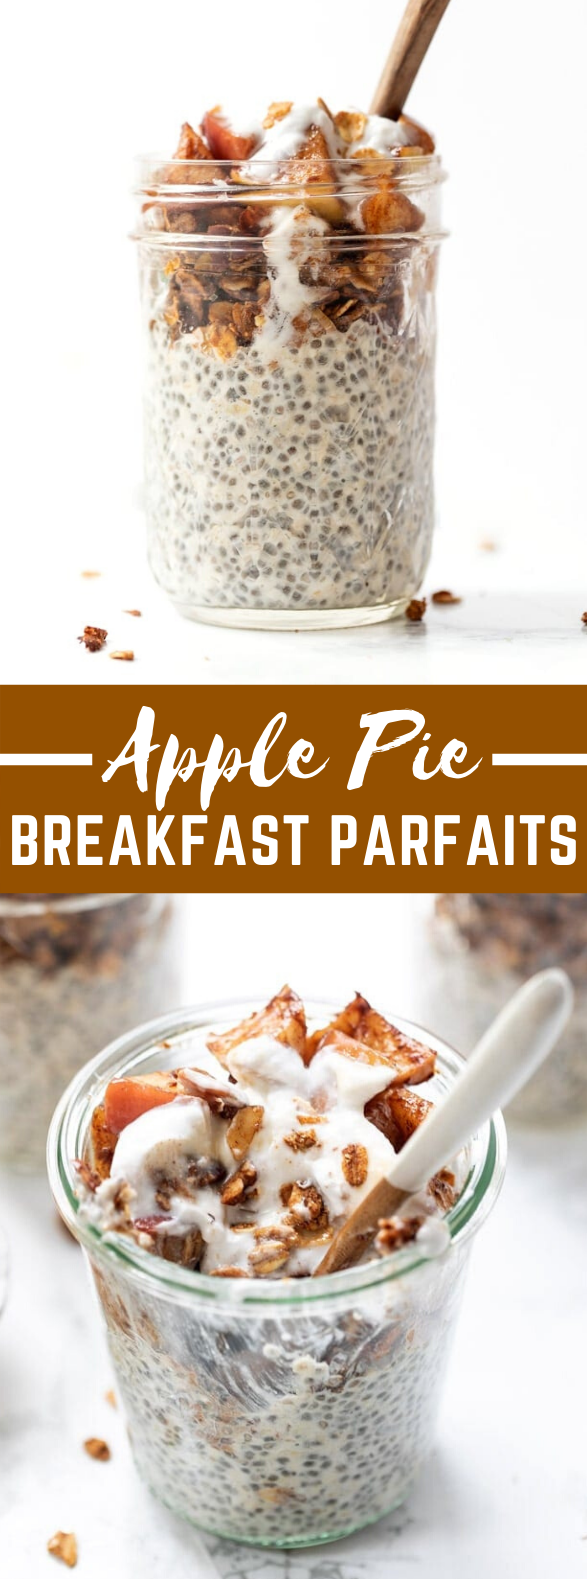 Healthy Apple Pie Breakfast Parfaits #morningtreat #diet